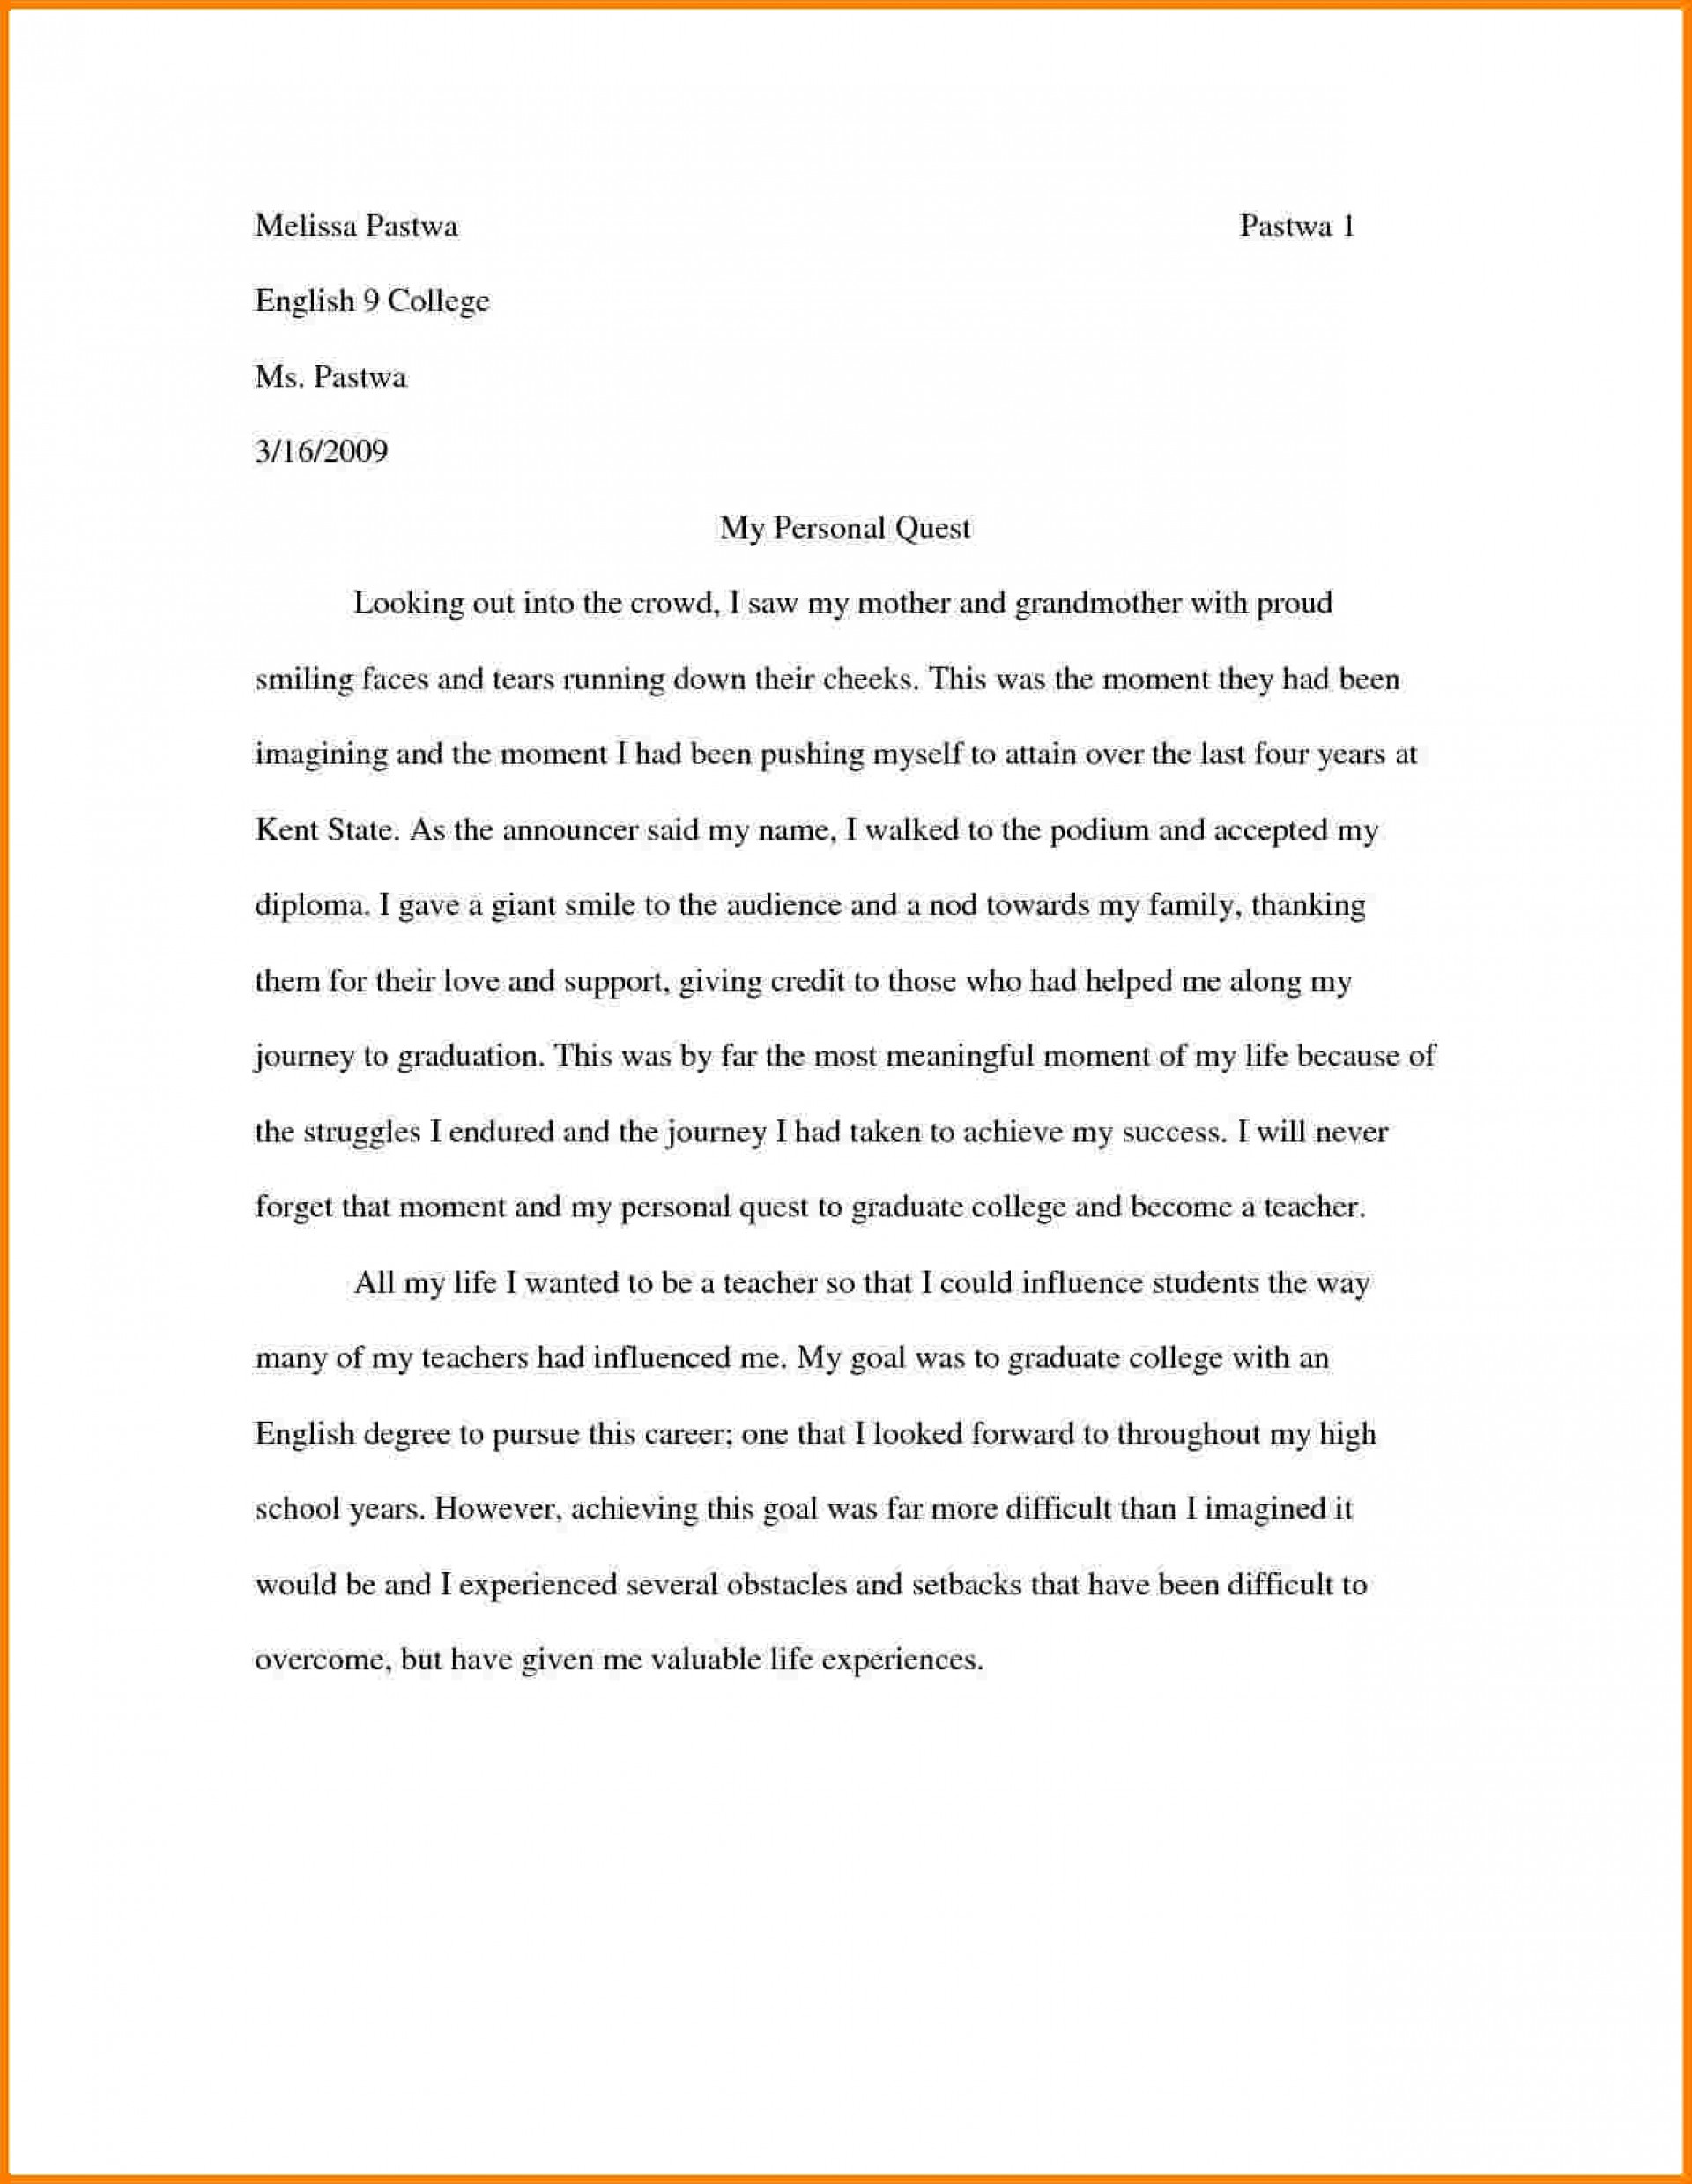 020 3341381556 How To Write Proposal20nt Essay Topics Buy Researchs Cheap Examples20 Good For Awesome Research Papers Middle School Economic Paper Interesting In The Philippines 1920